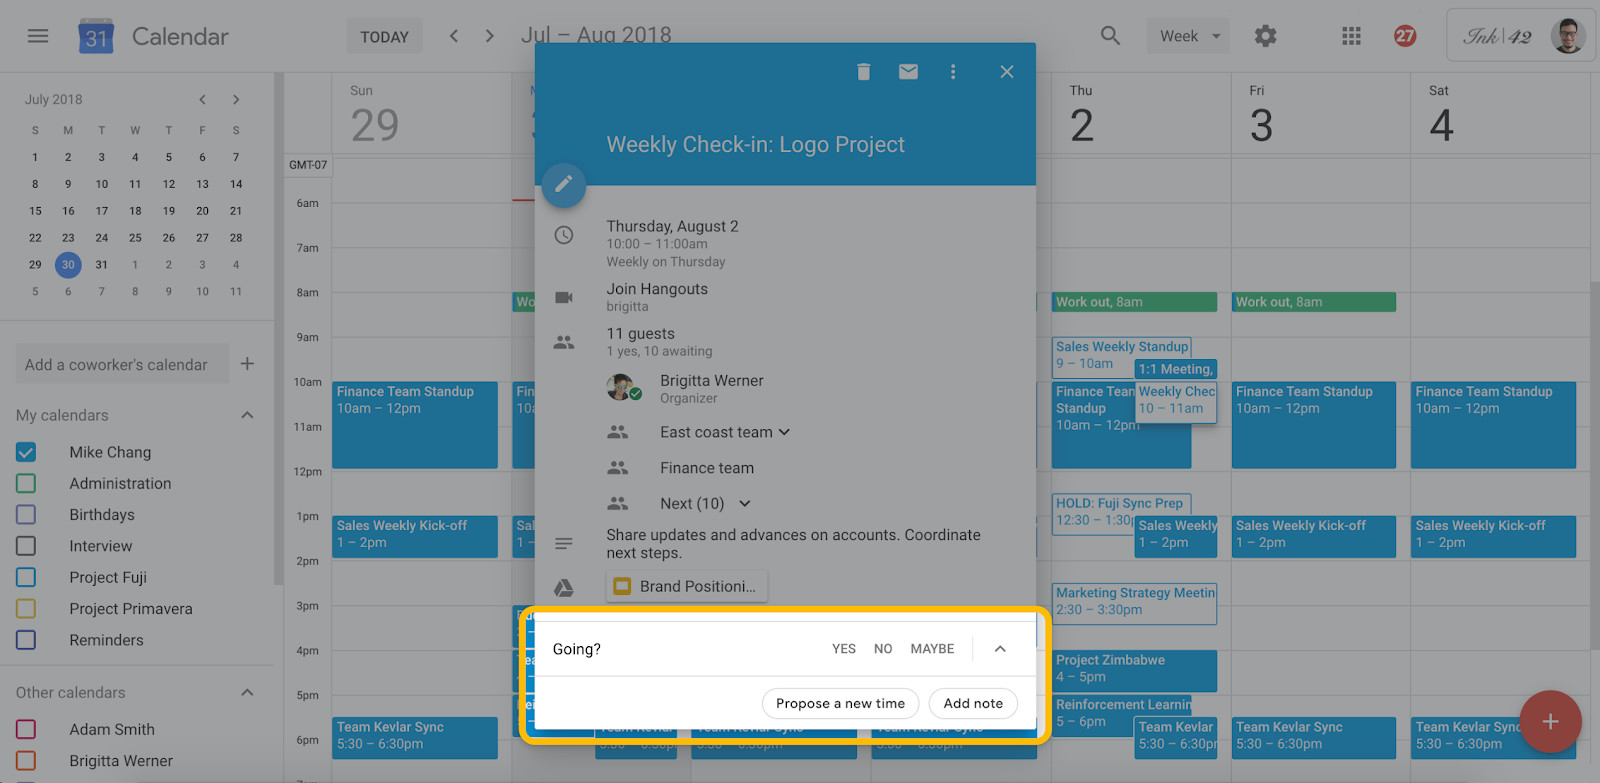 New Time Proposing Feature Makes It Easier To Schedule Meetings In